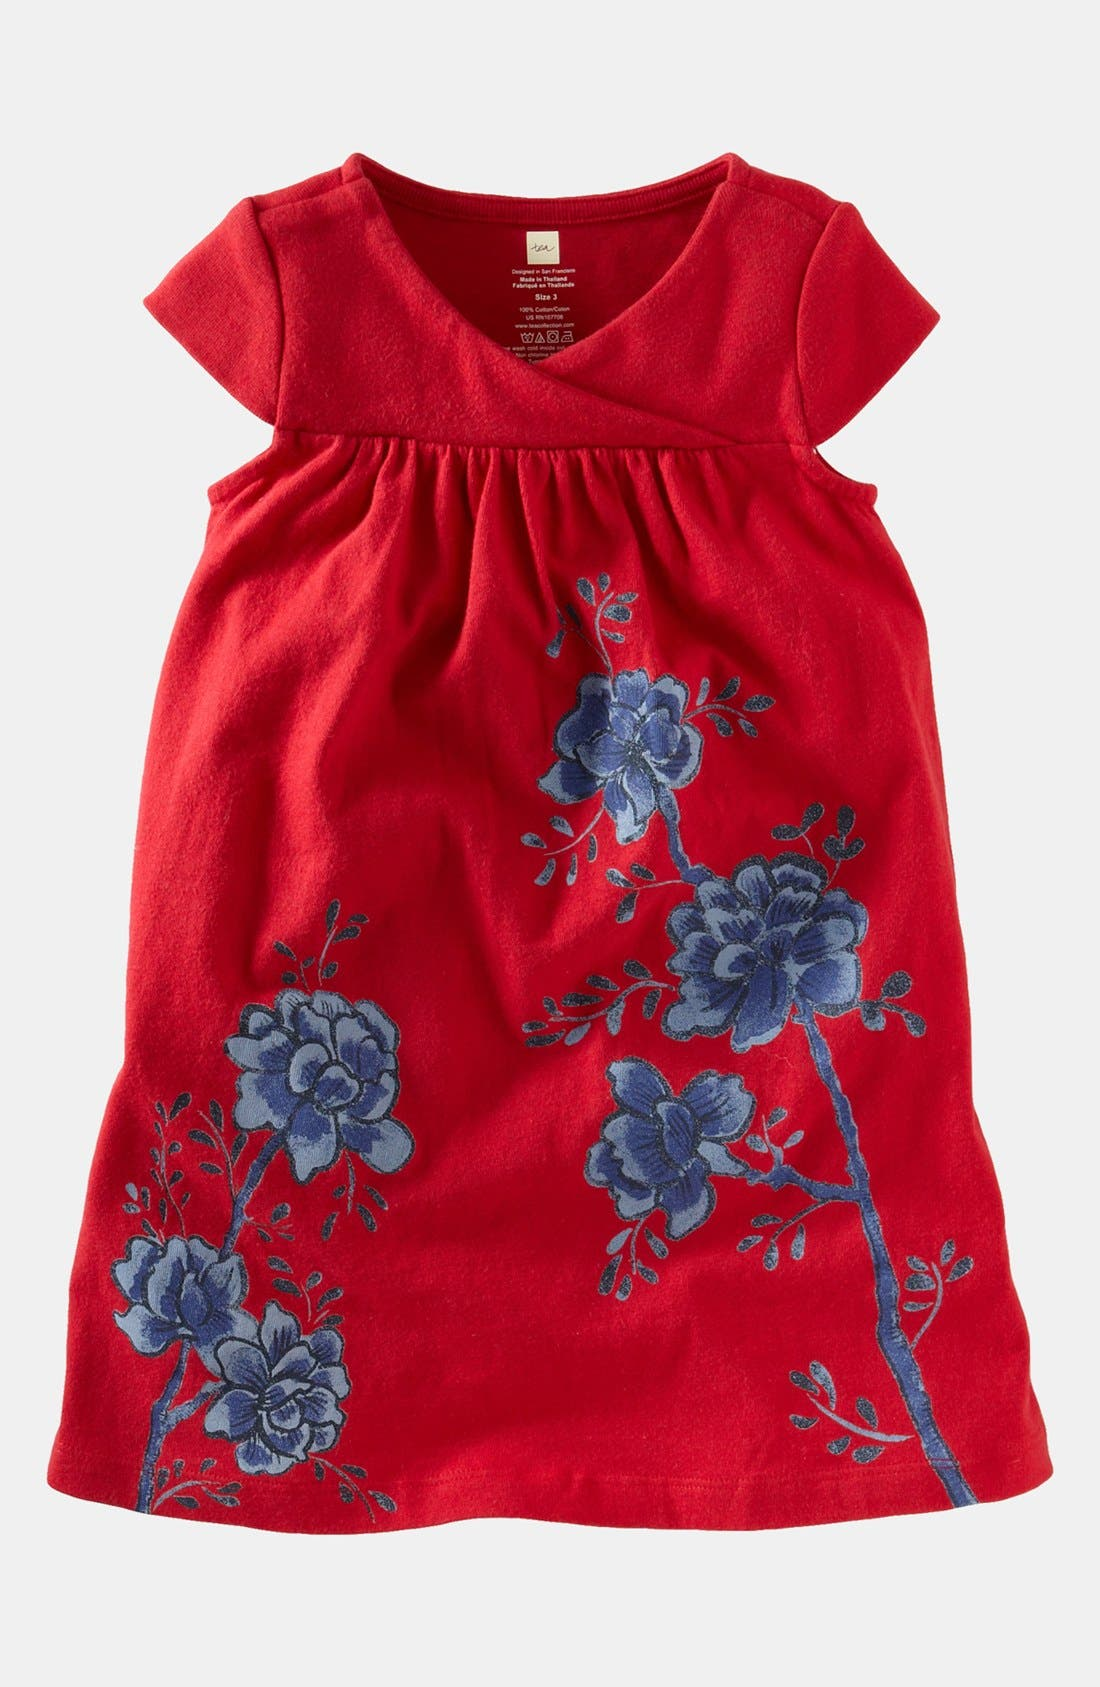 Alternate Image 1 Selected - Tea Collection 'Painted Pottery' Dress (Toddler Girls, Little Girls & Big Girls)